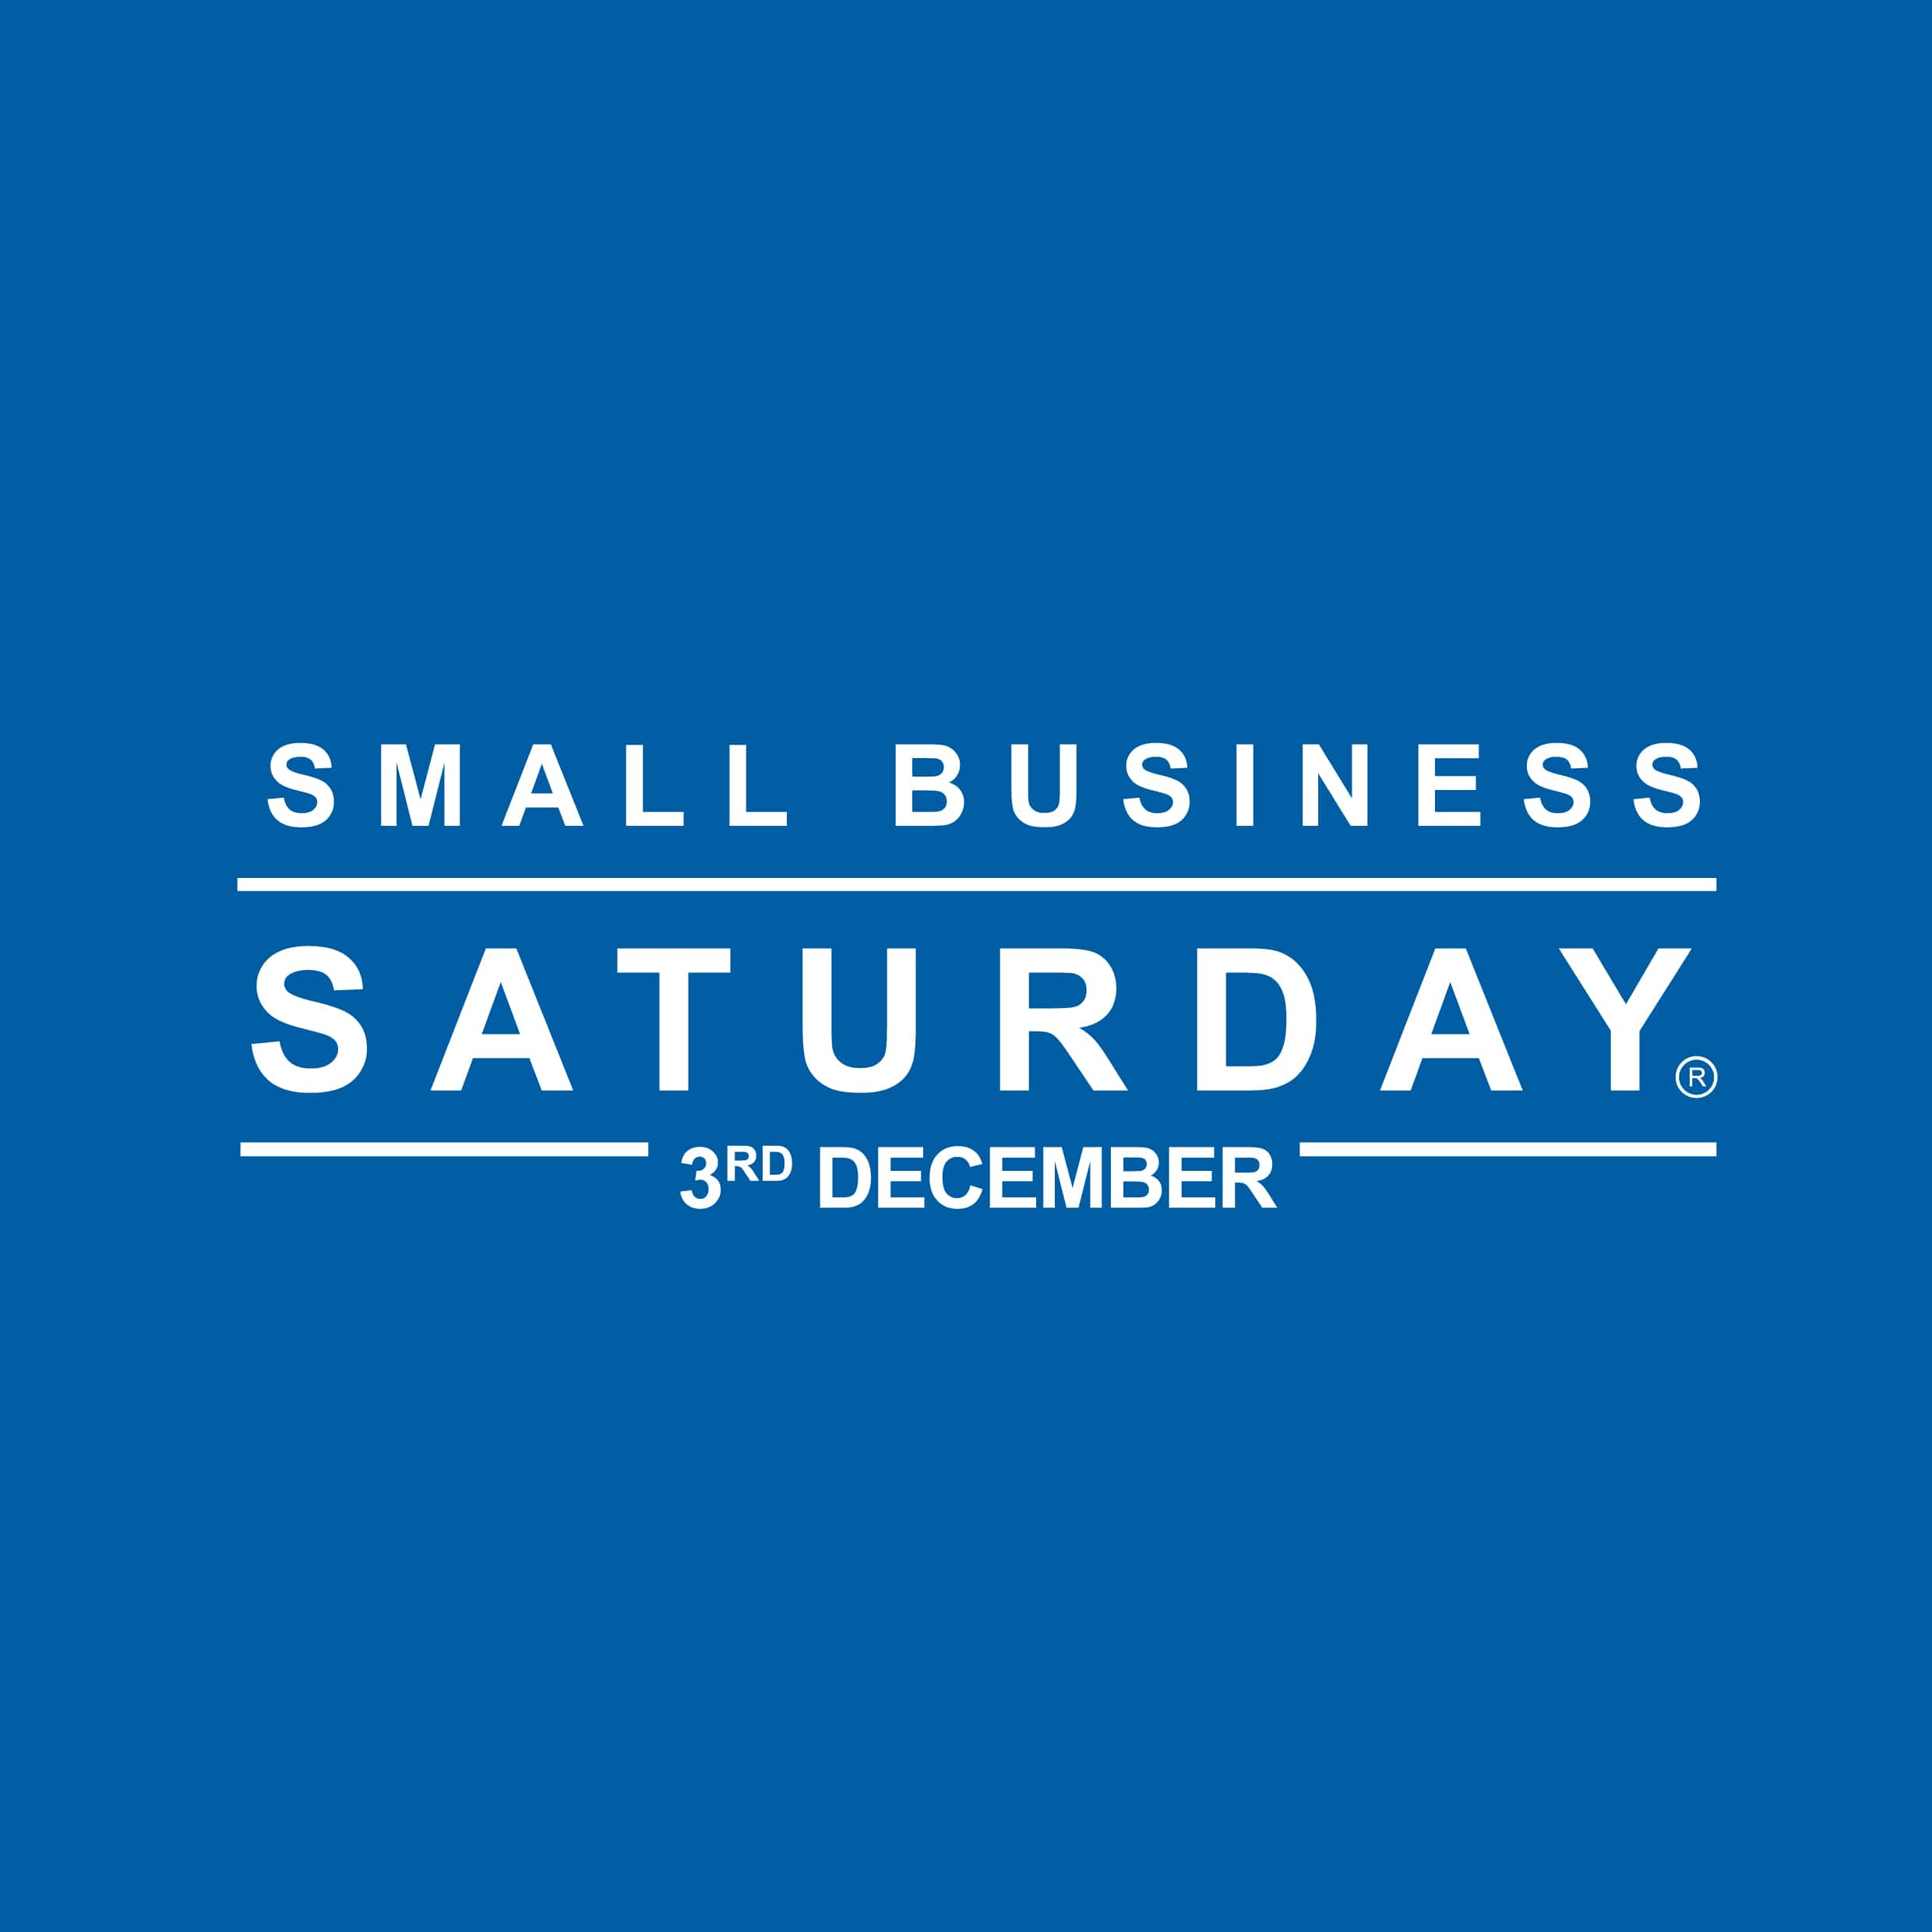 small-business-saturday-uk-2016-logo-english-blue-hi-res